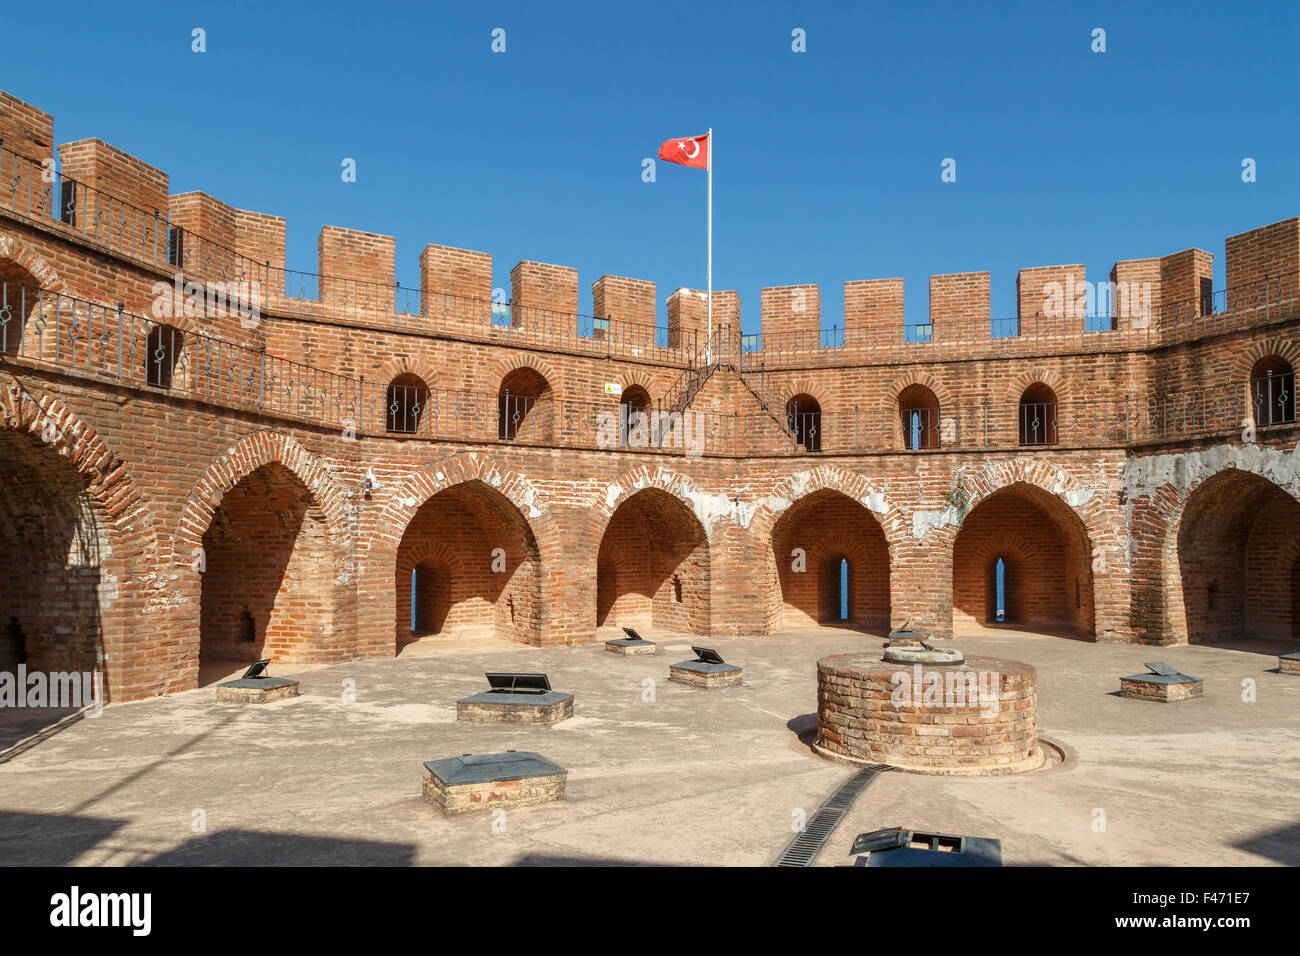 View of Alanya Red Tower in Antalya  with orenge bricks, on bright blue sky background. - Stock Image